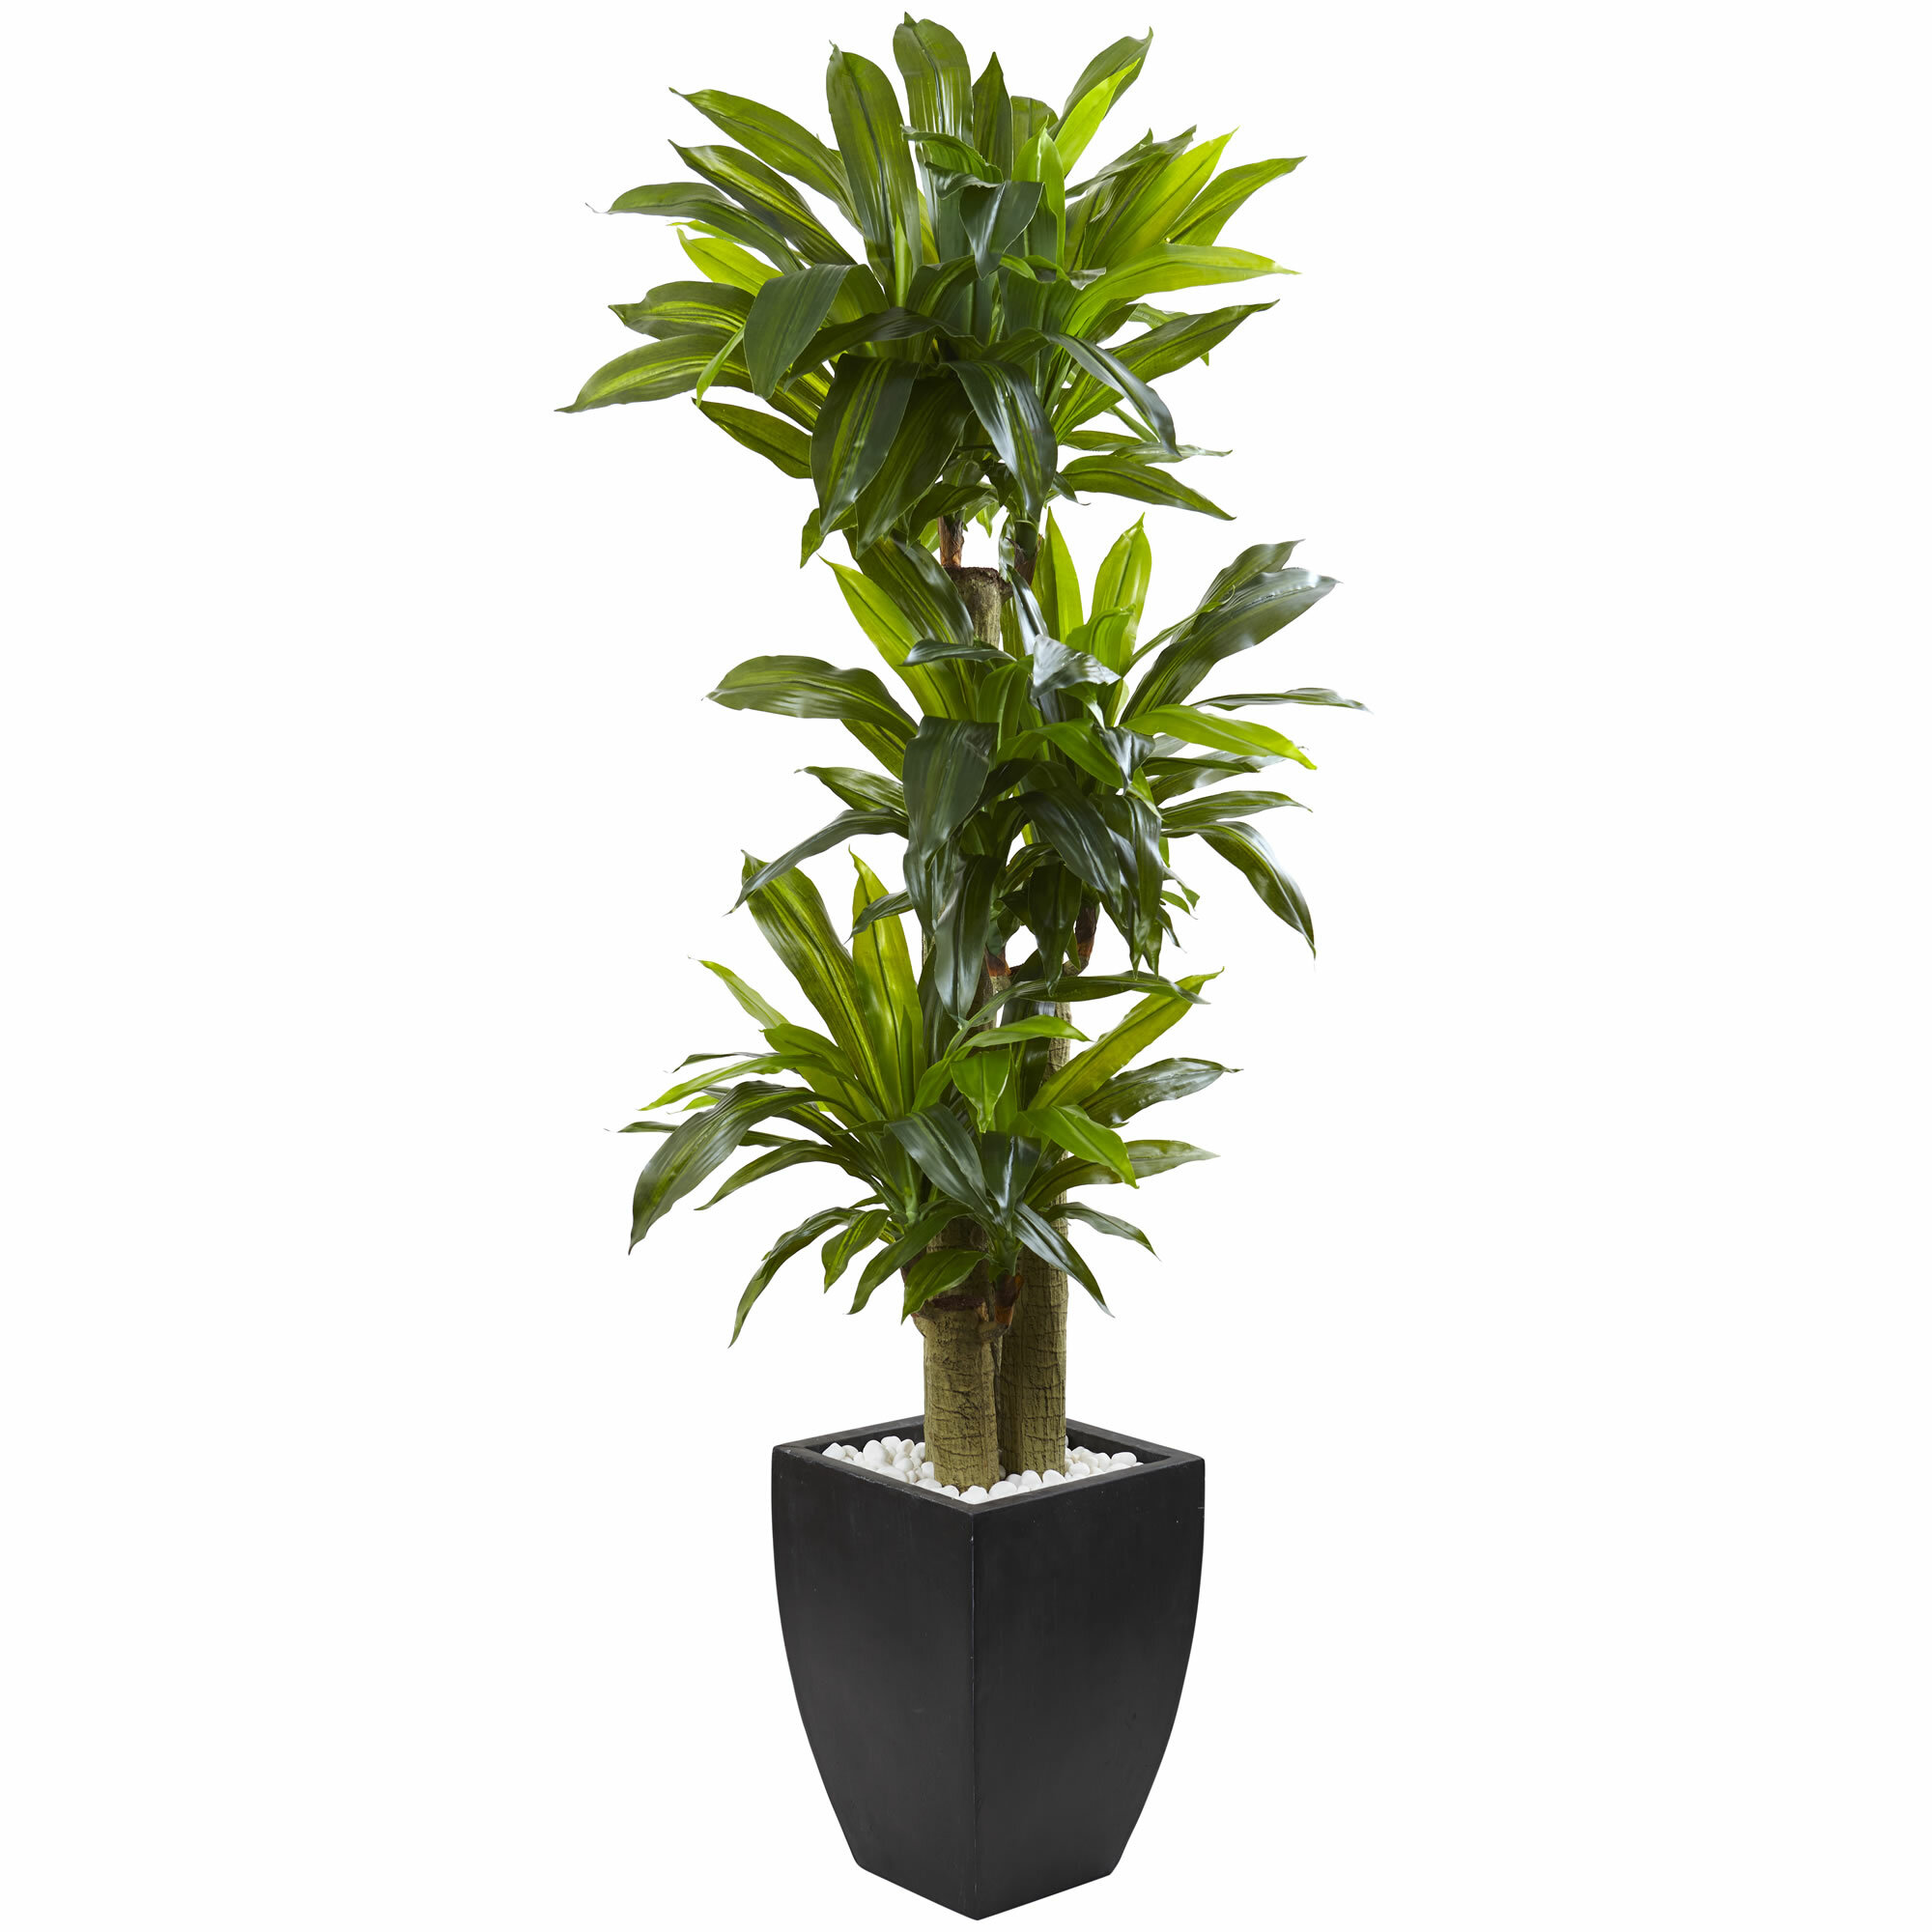 Bloomsbury Market Corn Stalk Dracaena Floor Foliage Plant In